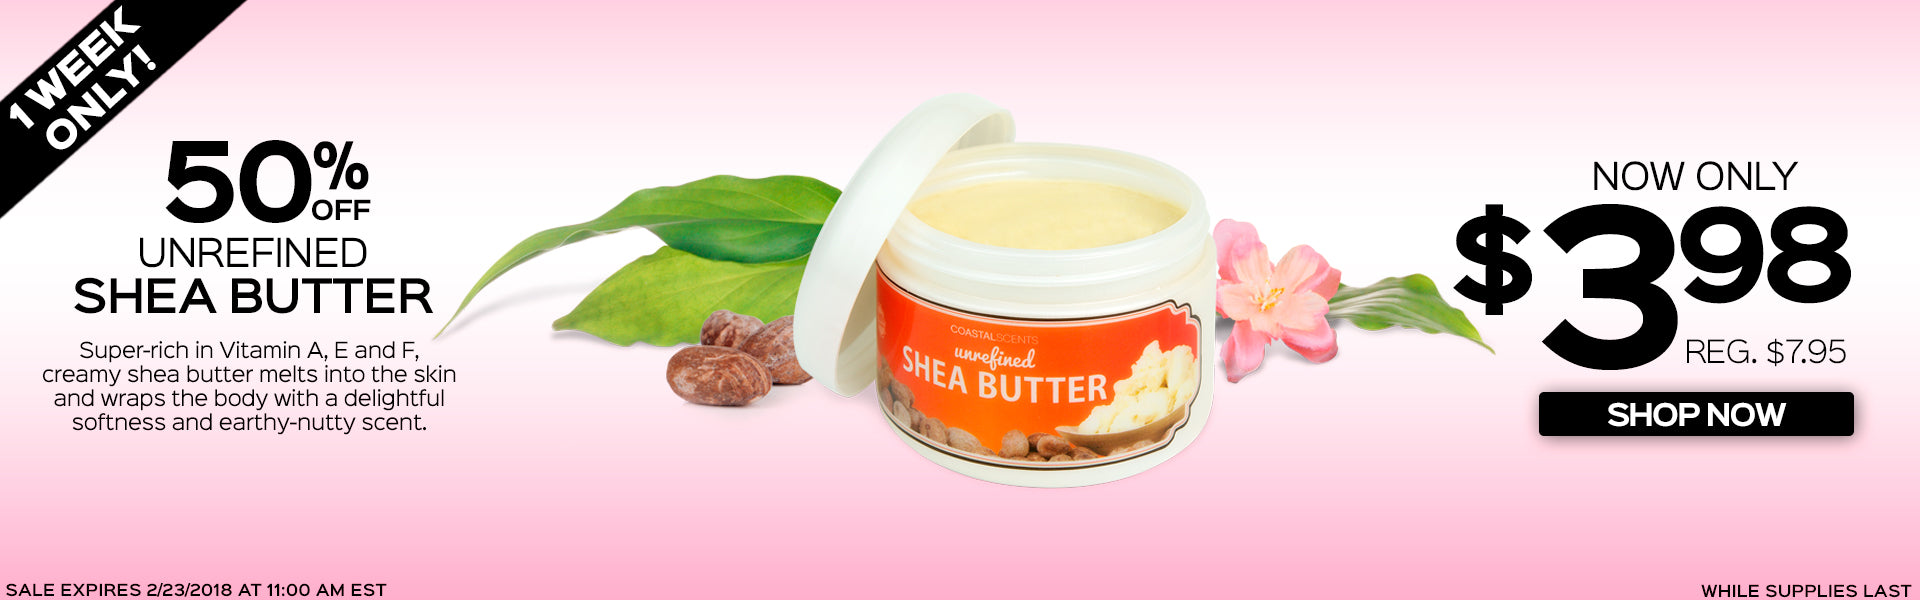 50% Off Unrefined Shea Butter. Now Only $3.98, Reg. $7.95